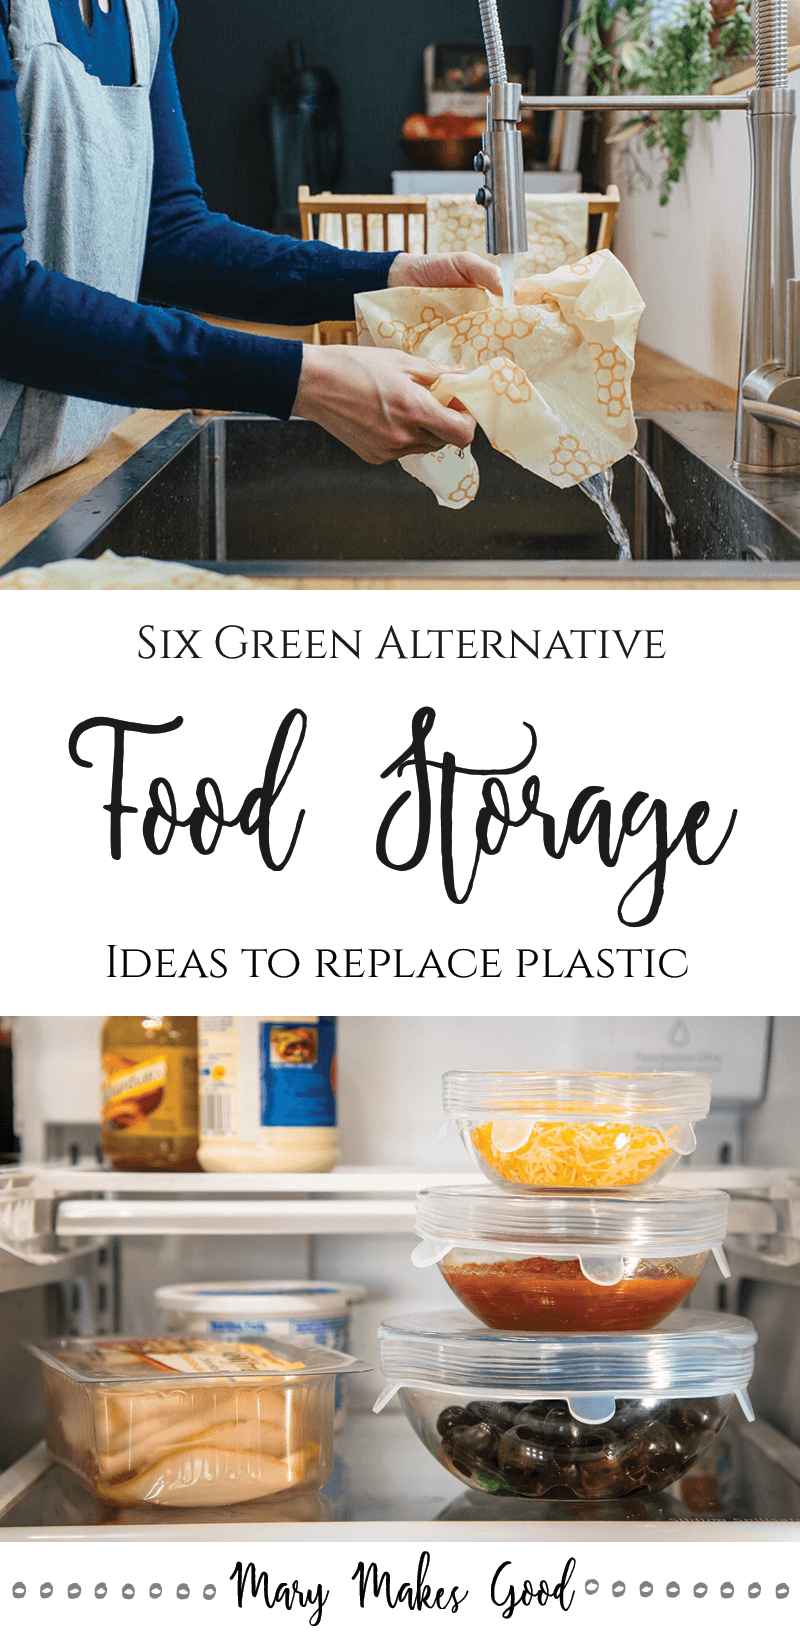 Green Food Storage: Six Ways to Replace Disposable Plastic Wrap and Baggies